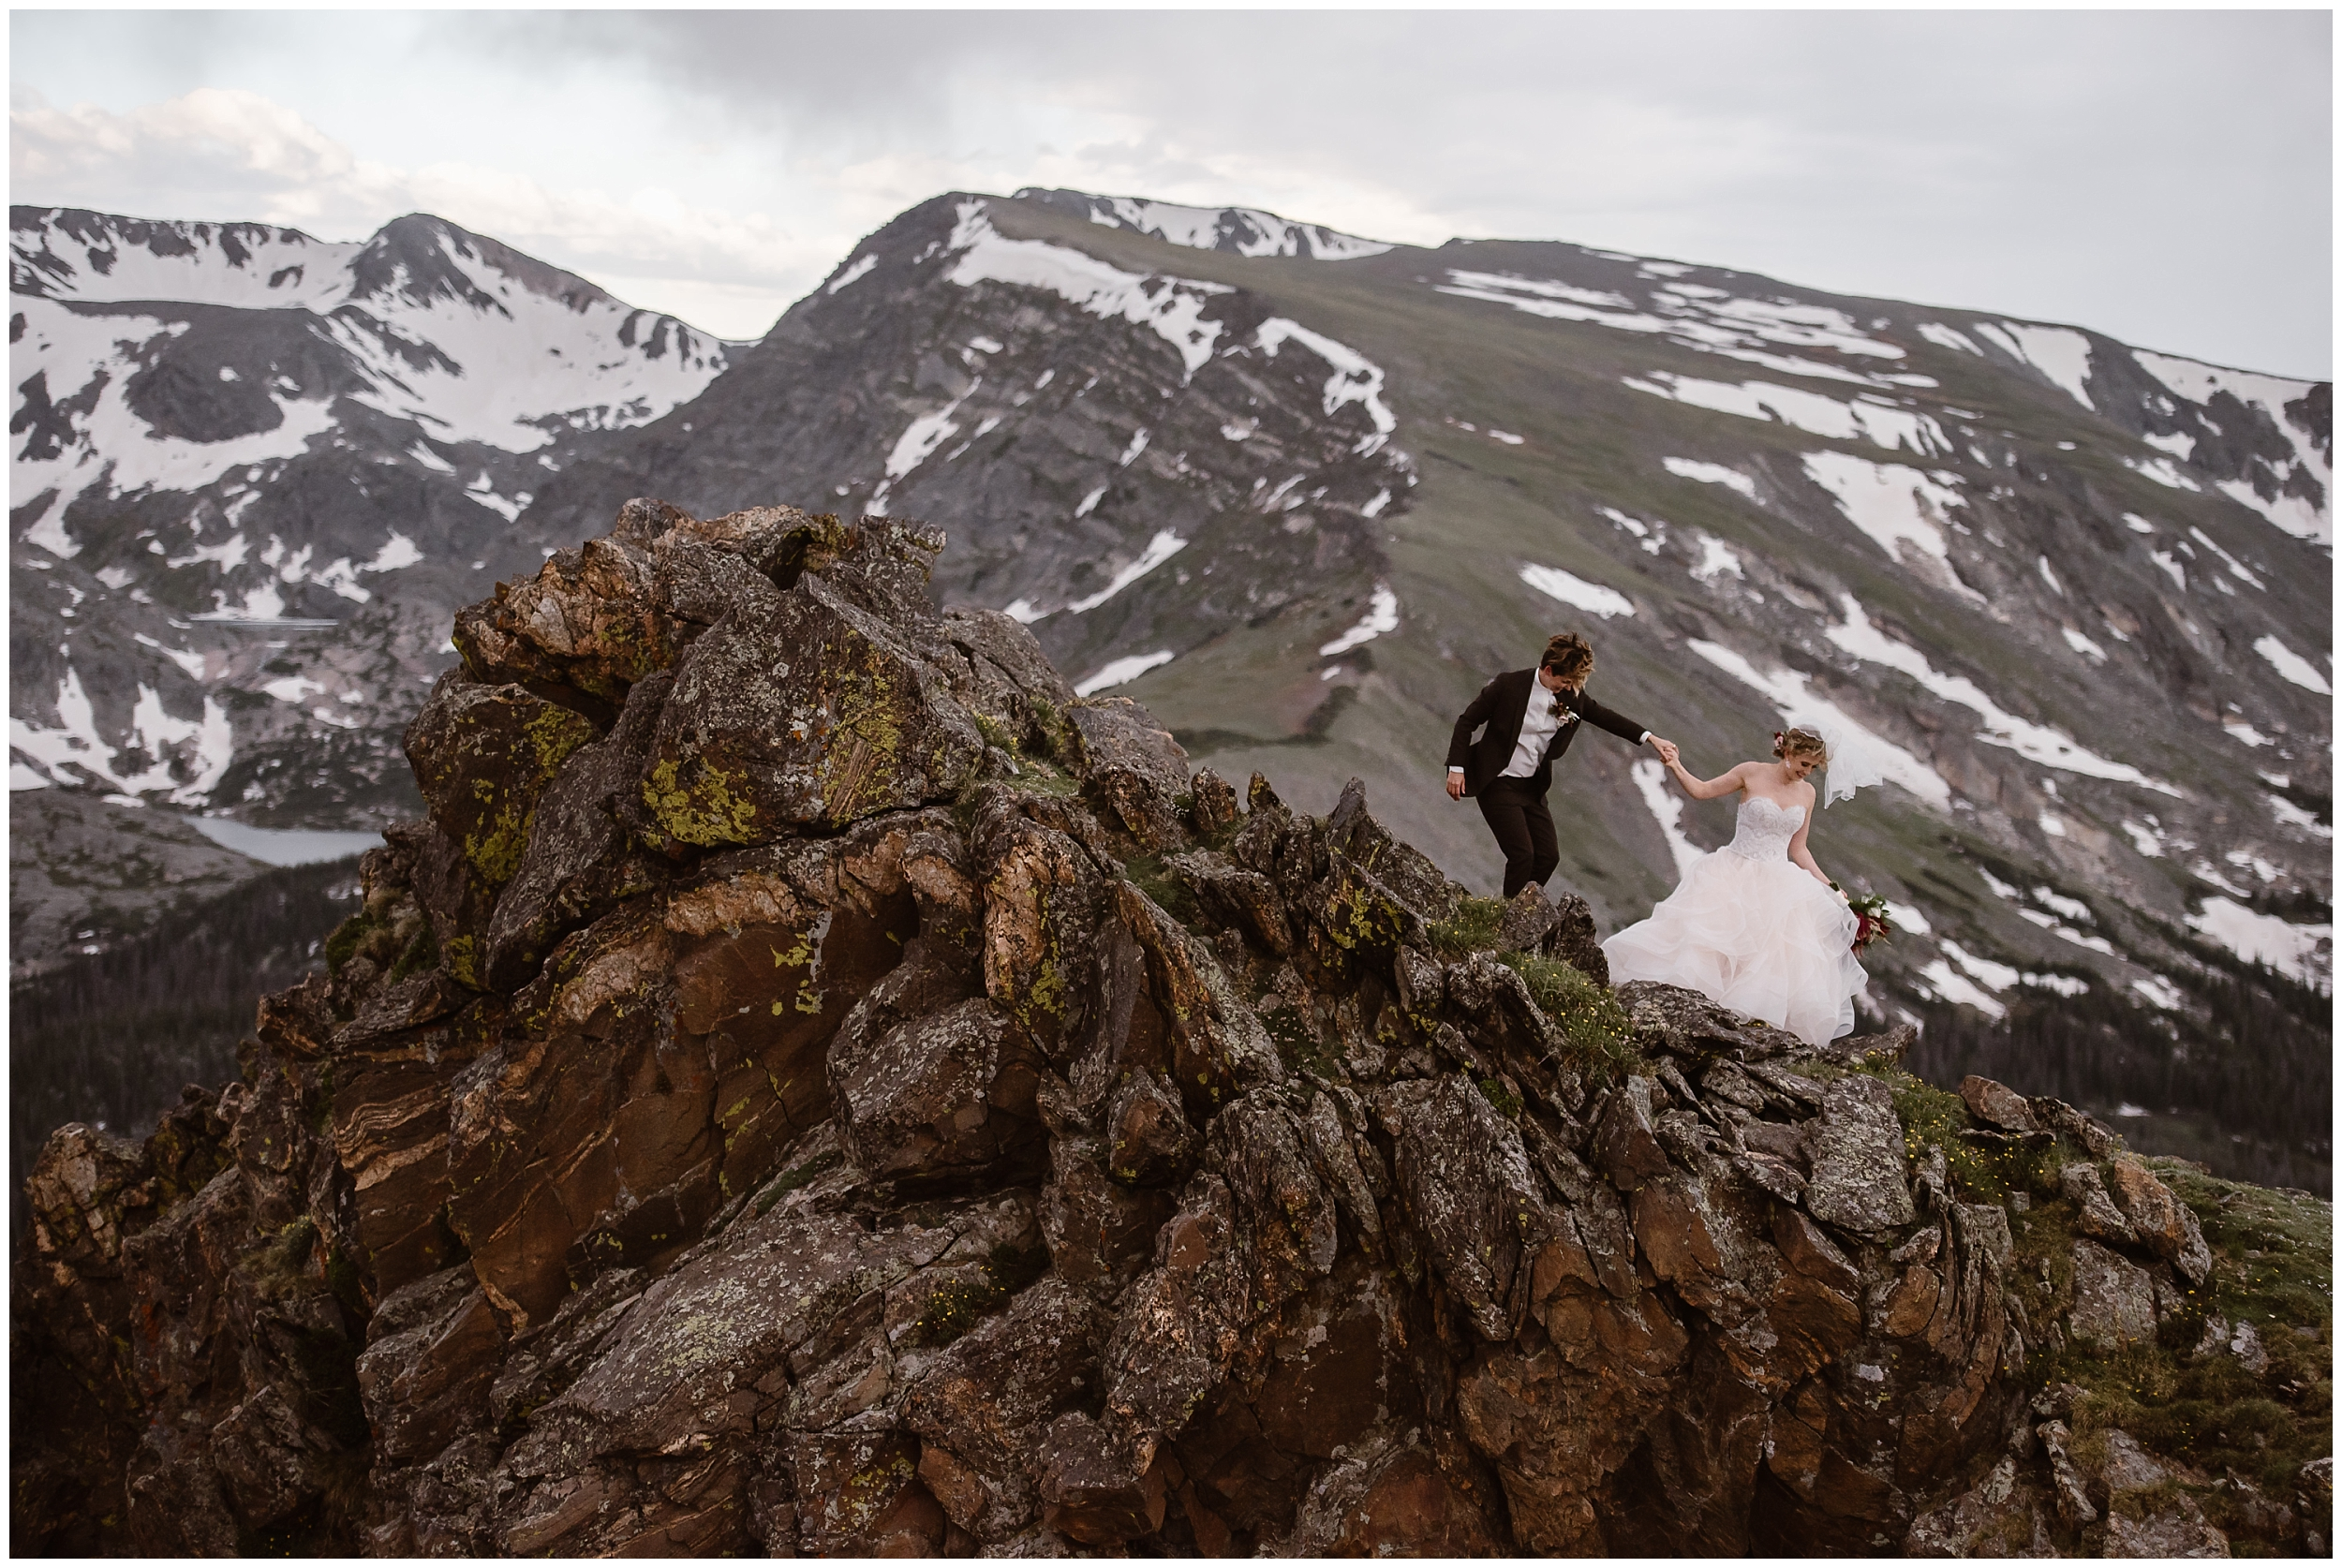 A bride and her partner hold hands as they traipse down a rocky mountainside together. Her partner, in a black suit, holds her hand as she hold up her wedding dress. Snowy mountains can be seen in the background.